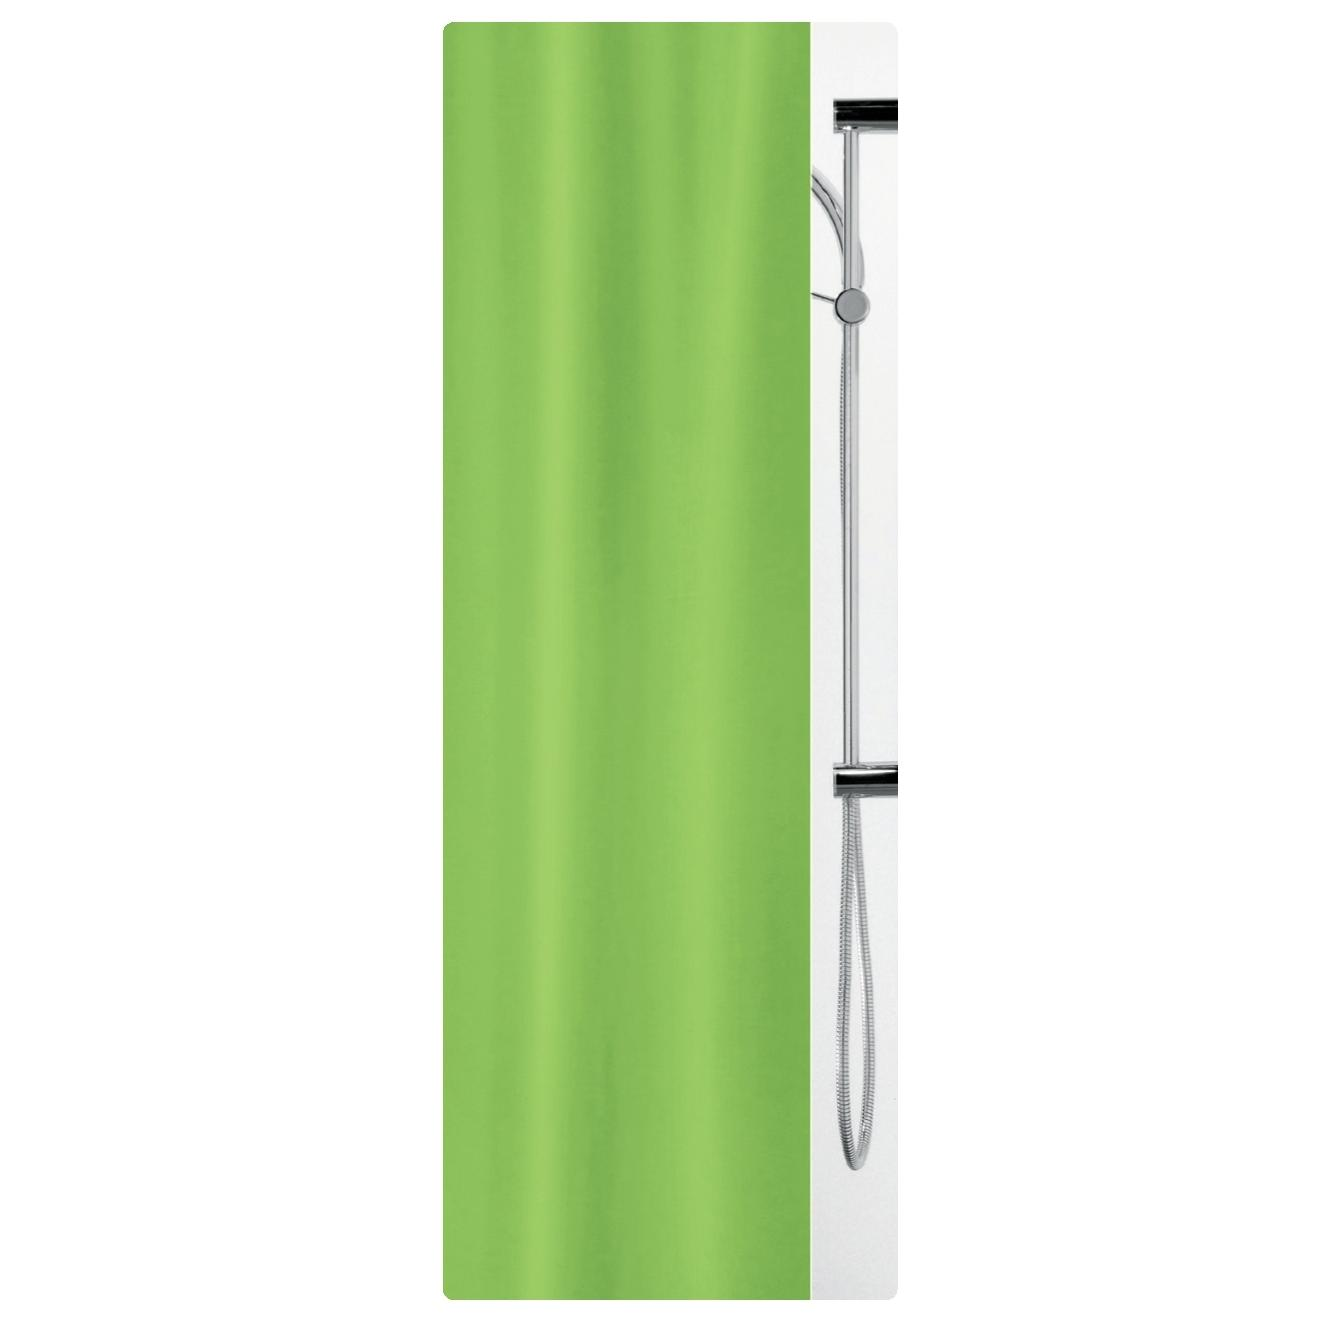 Fabric Shower Curtain Green 100 Polyester 180x200 Cm